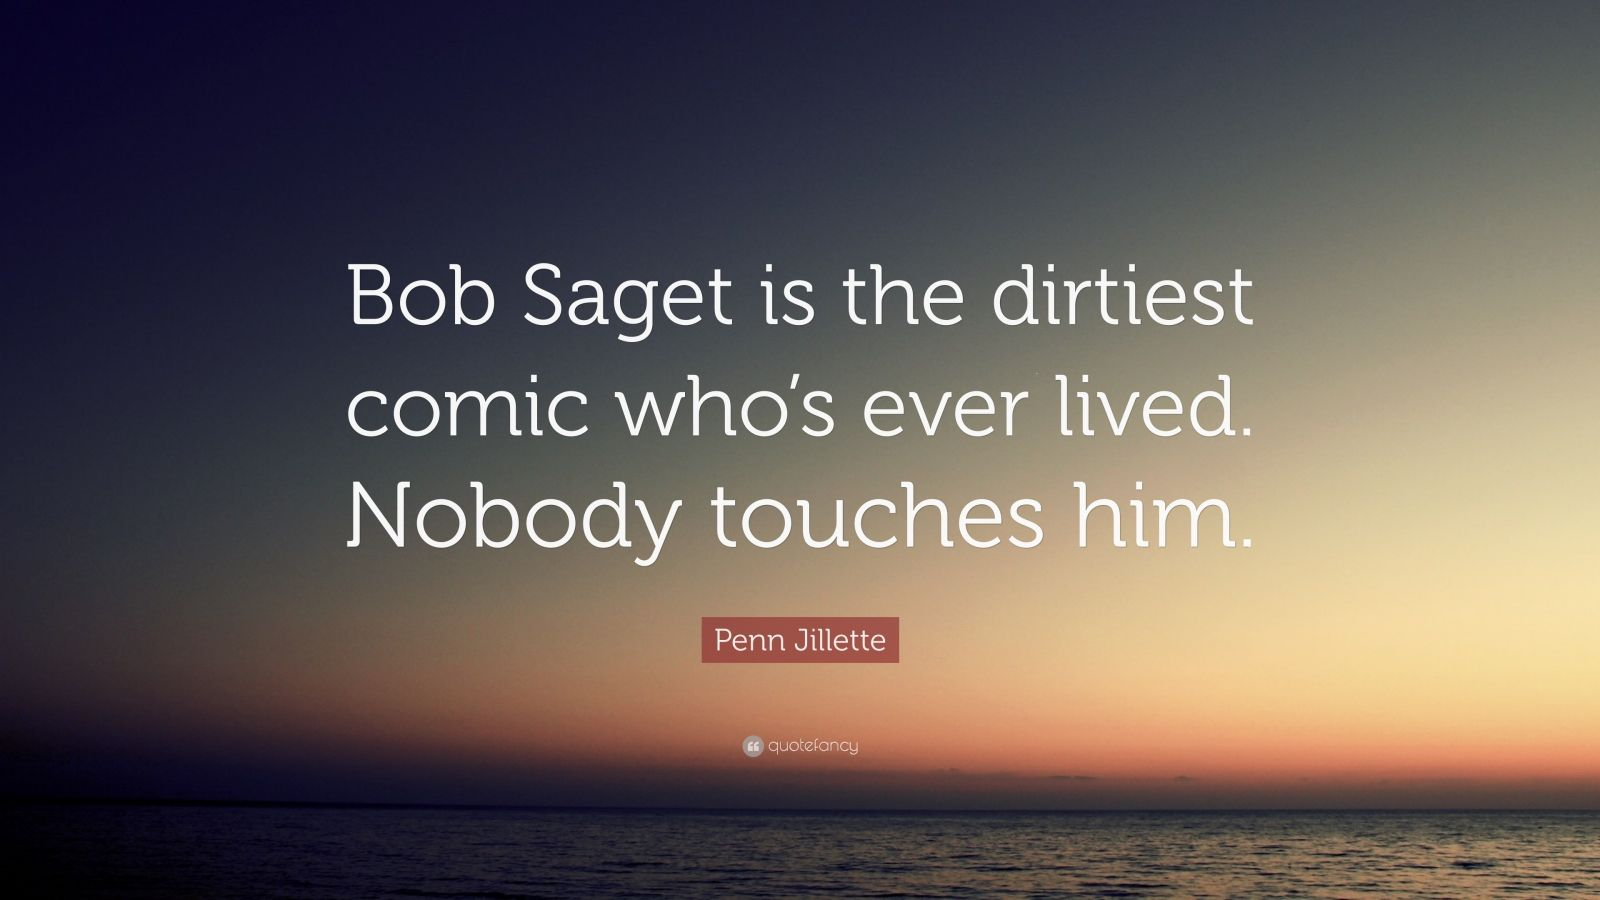 """Penn Jillette Quote: """"Bob Saget is the dirtiest comic who's ever lived. Nobody touches him."""""""